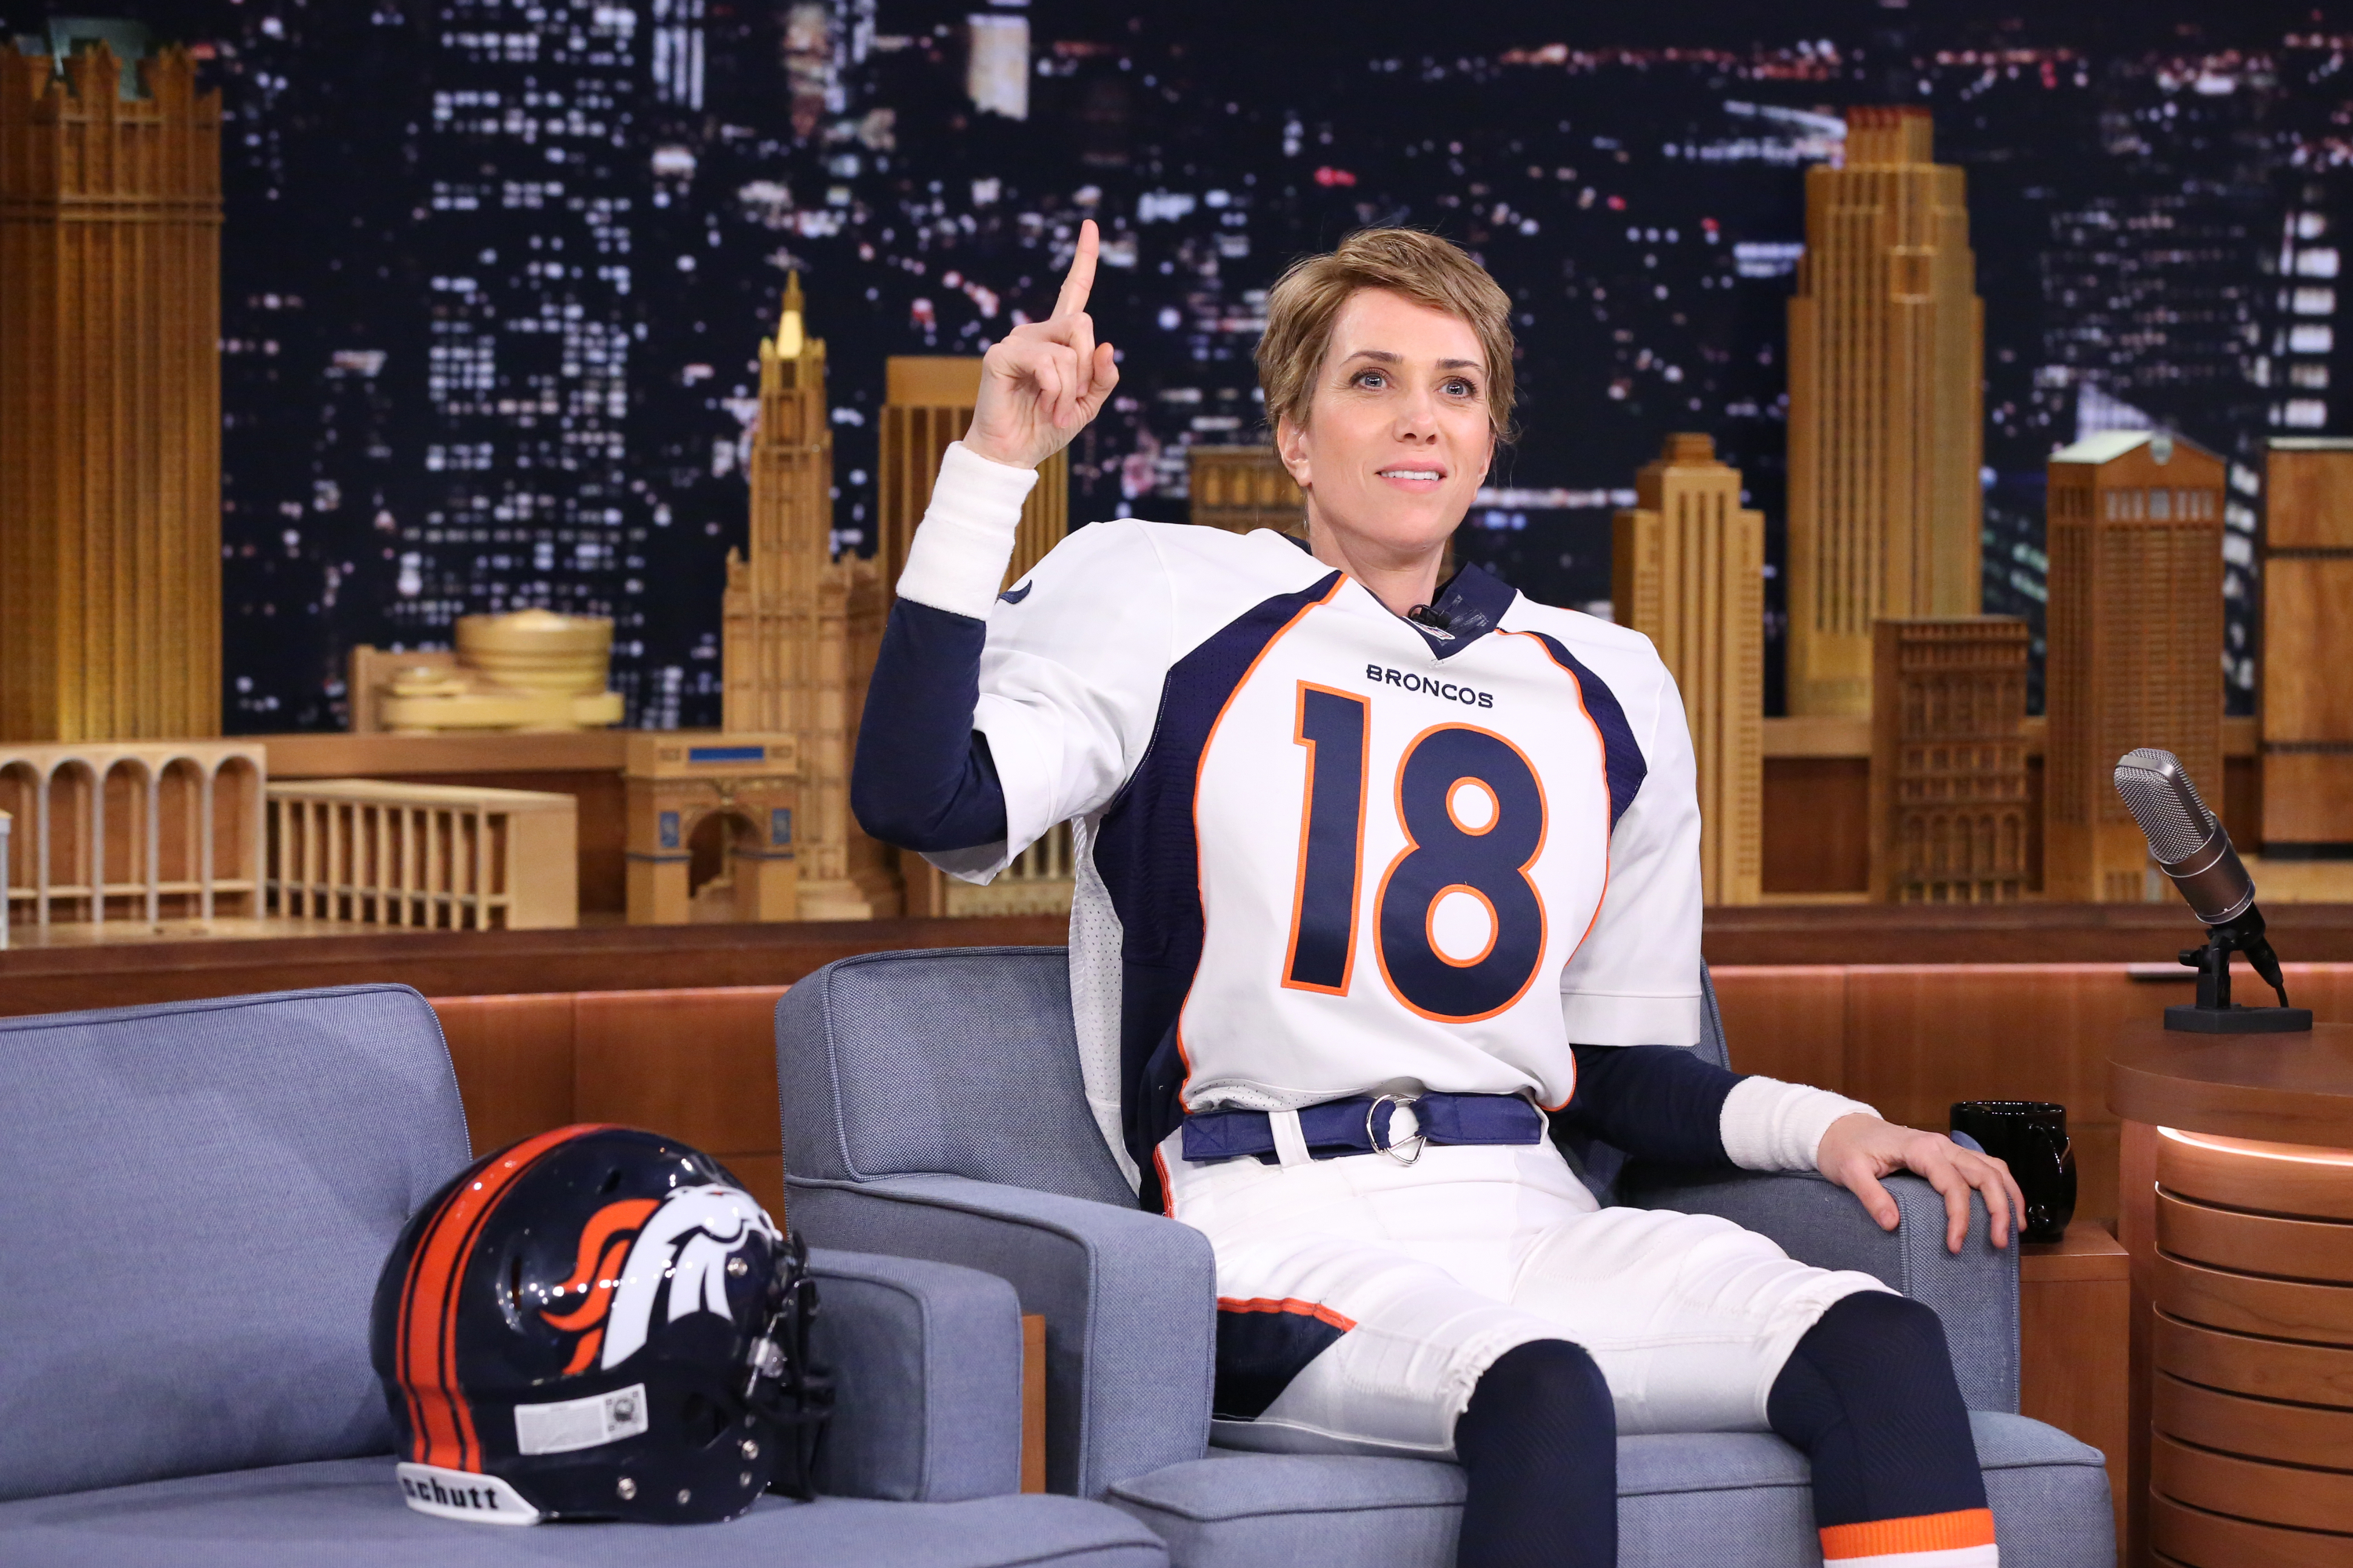 Kristen Wiig dressed as Denver Bronco's quarterback Peyton Manning on 'The Tonight Show' with Jimmy Fallon on Feb. 11, 2016.